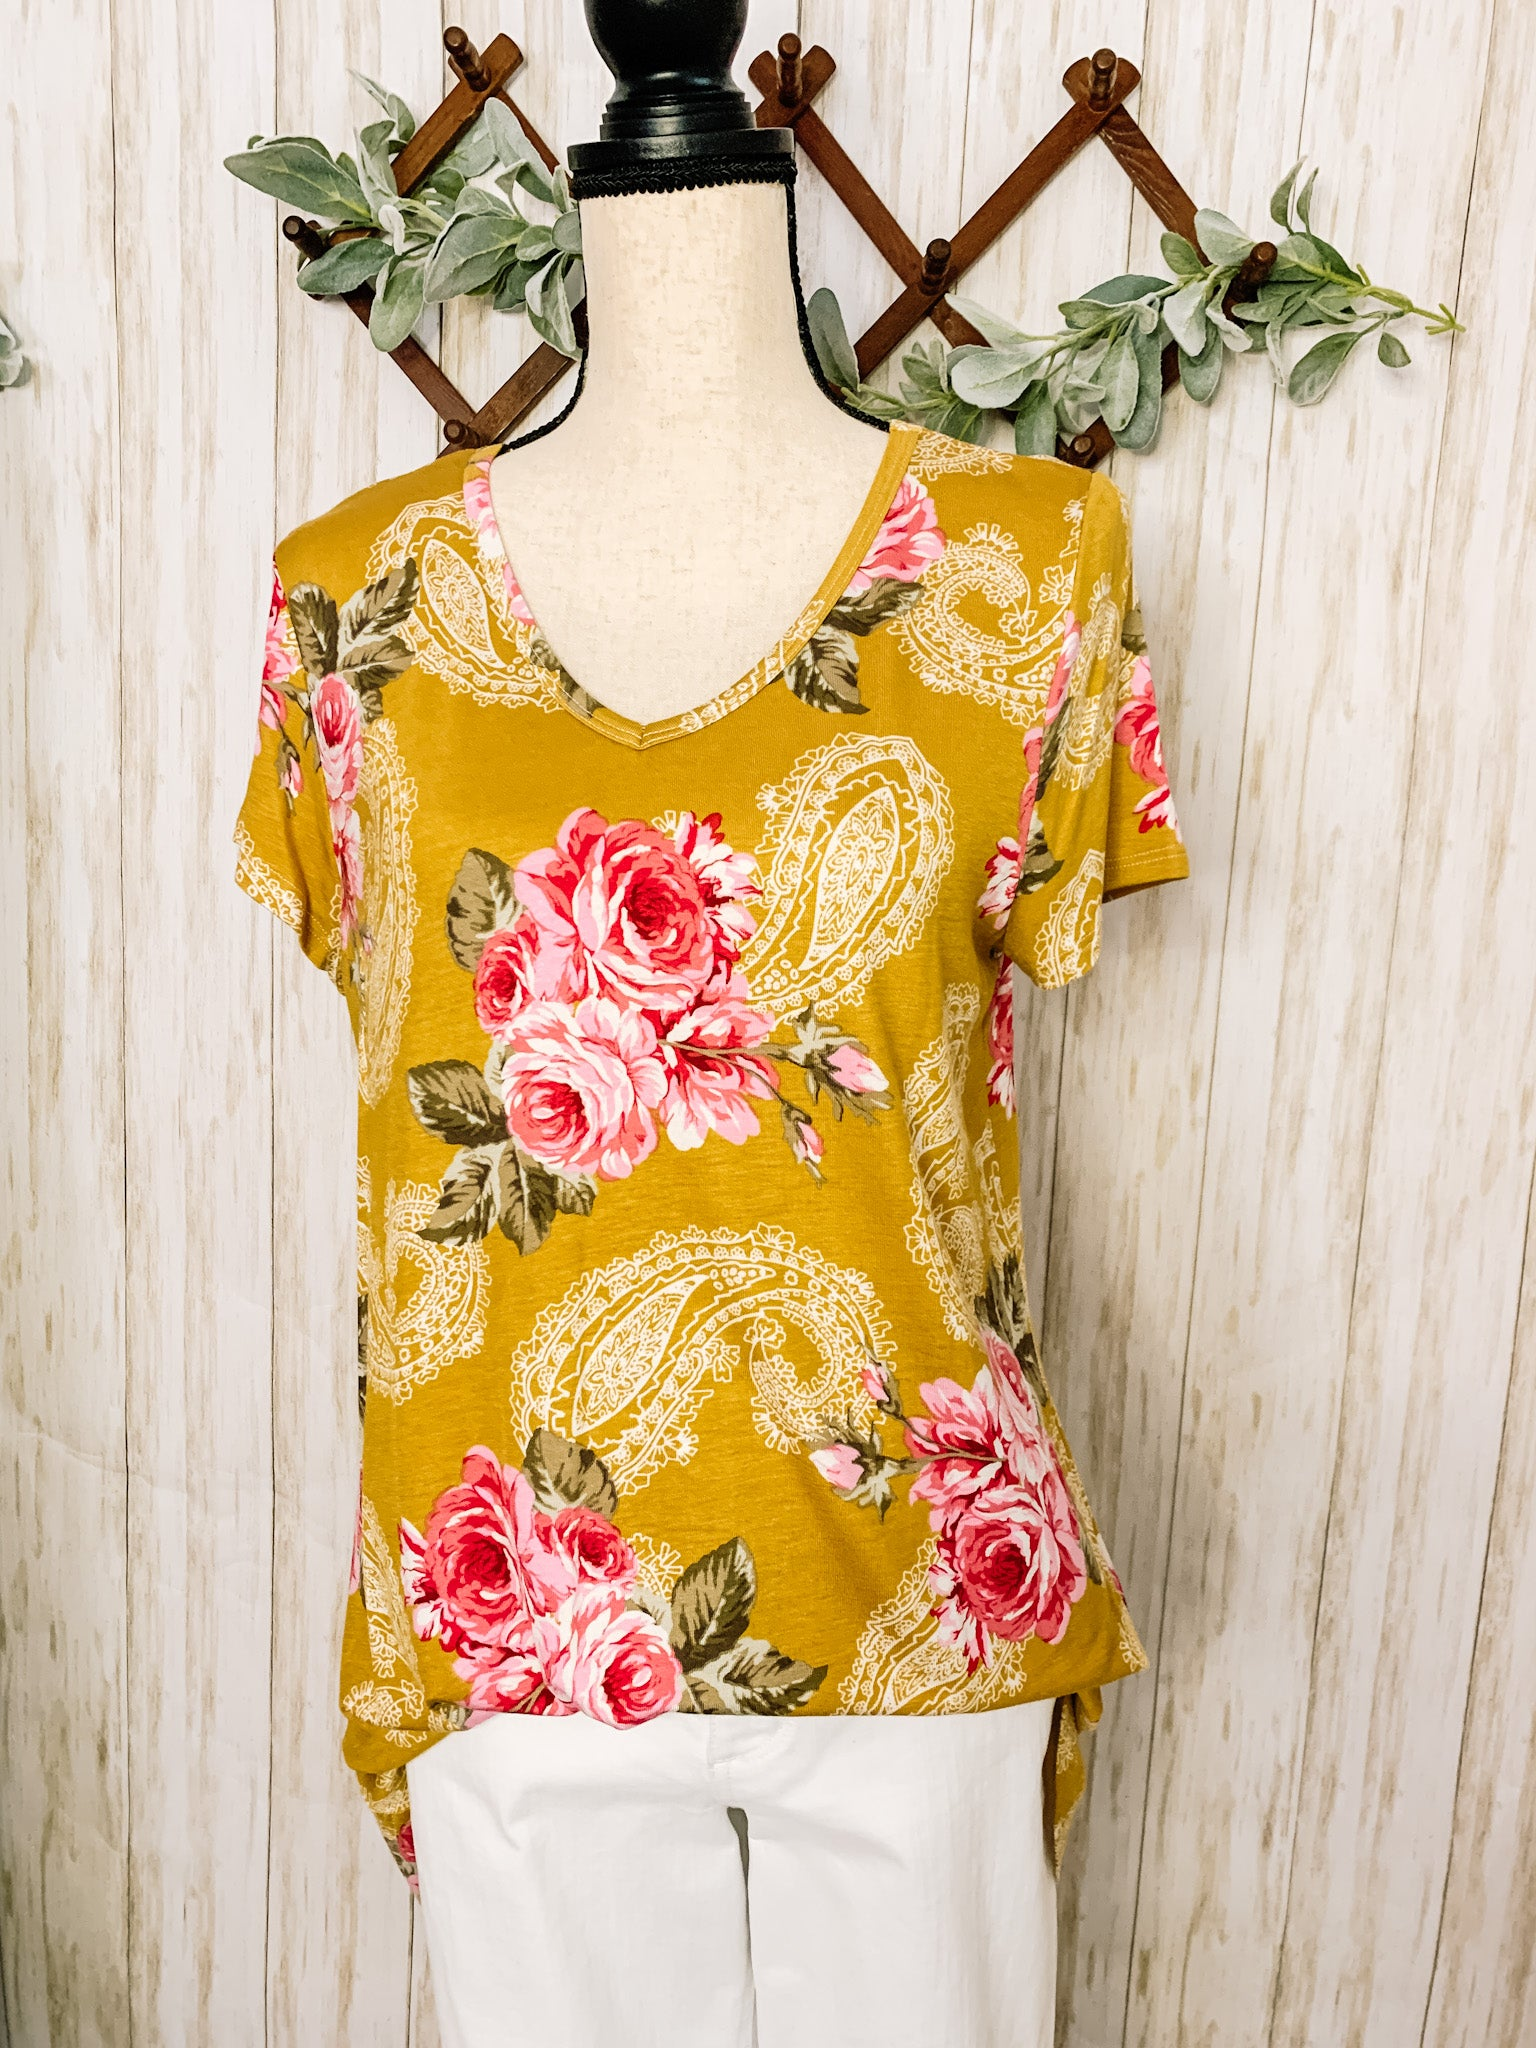 Paisley Floral Top - Velvet Crown Boutique